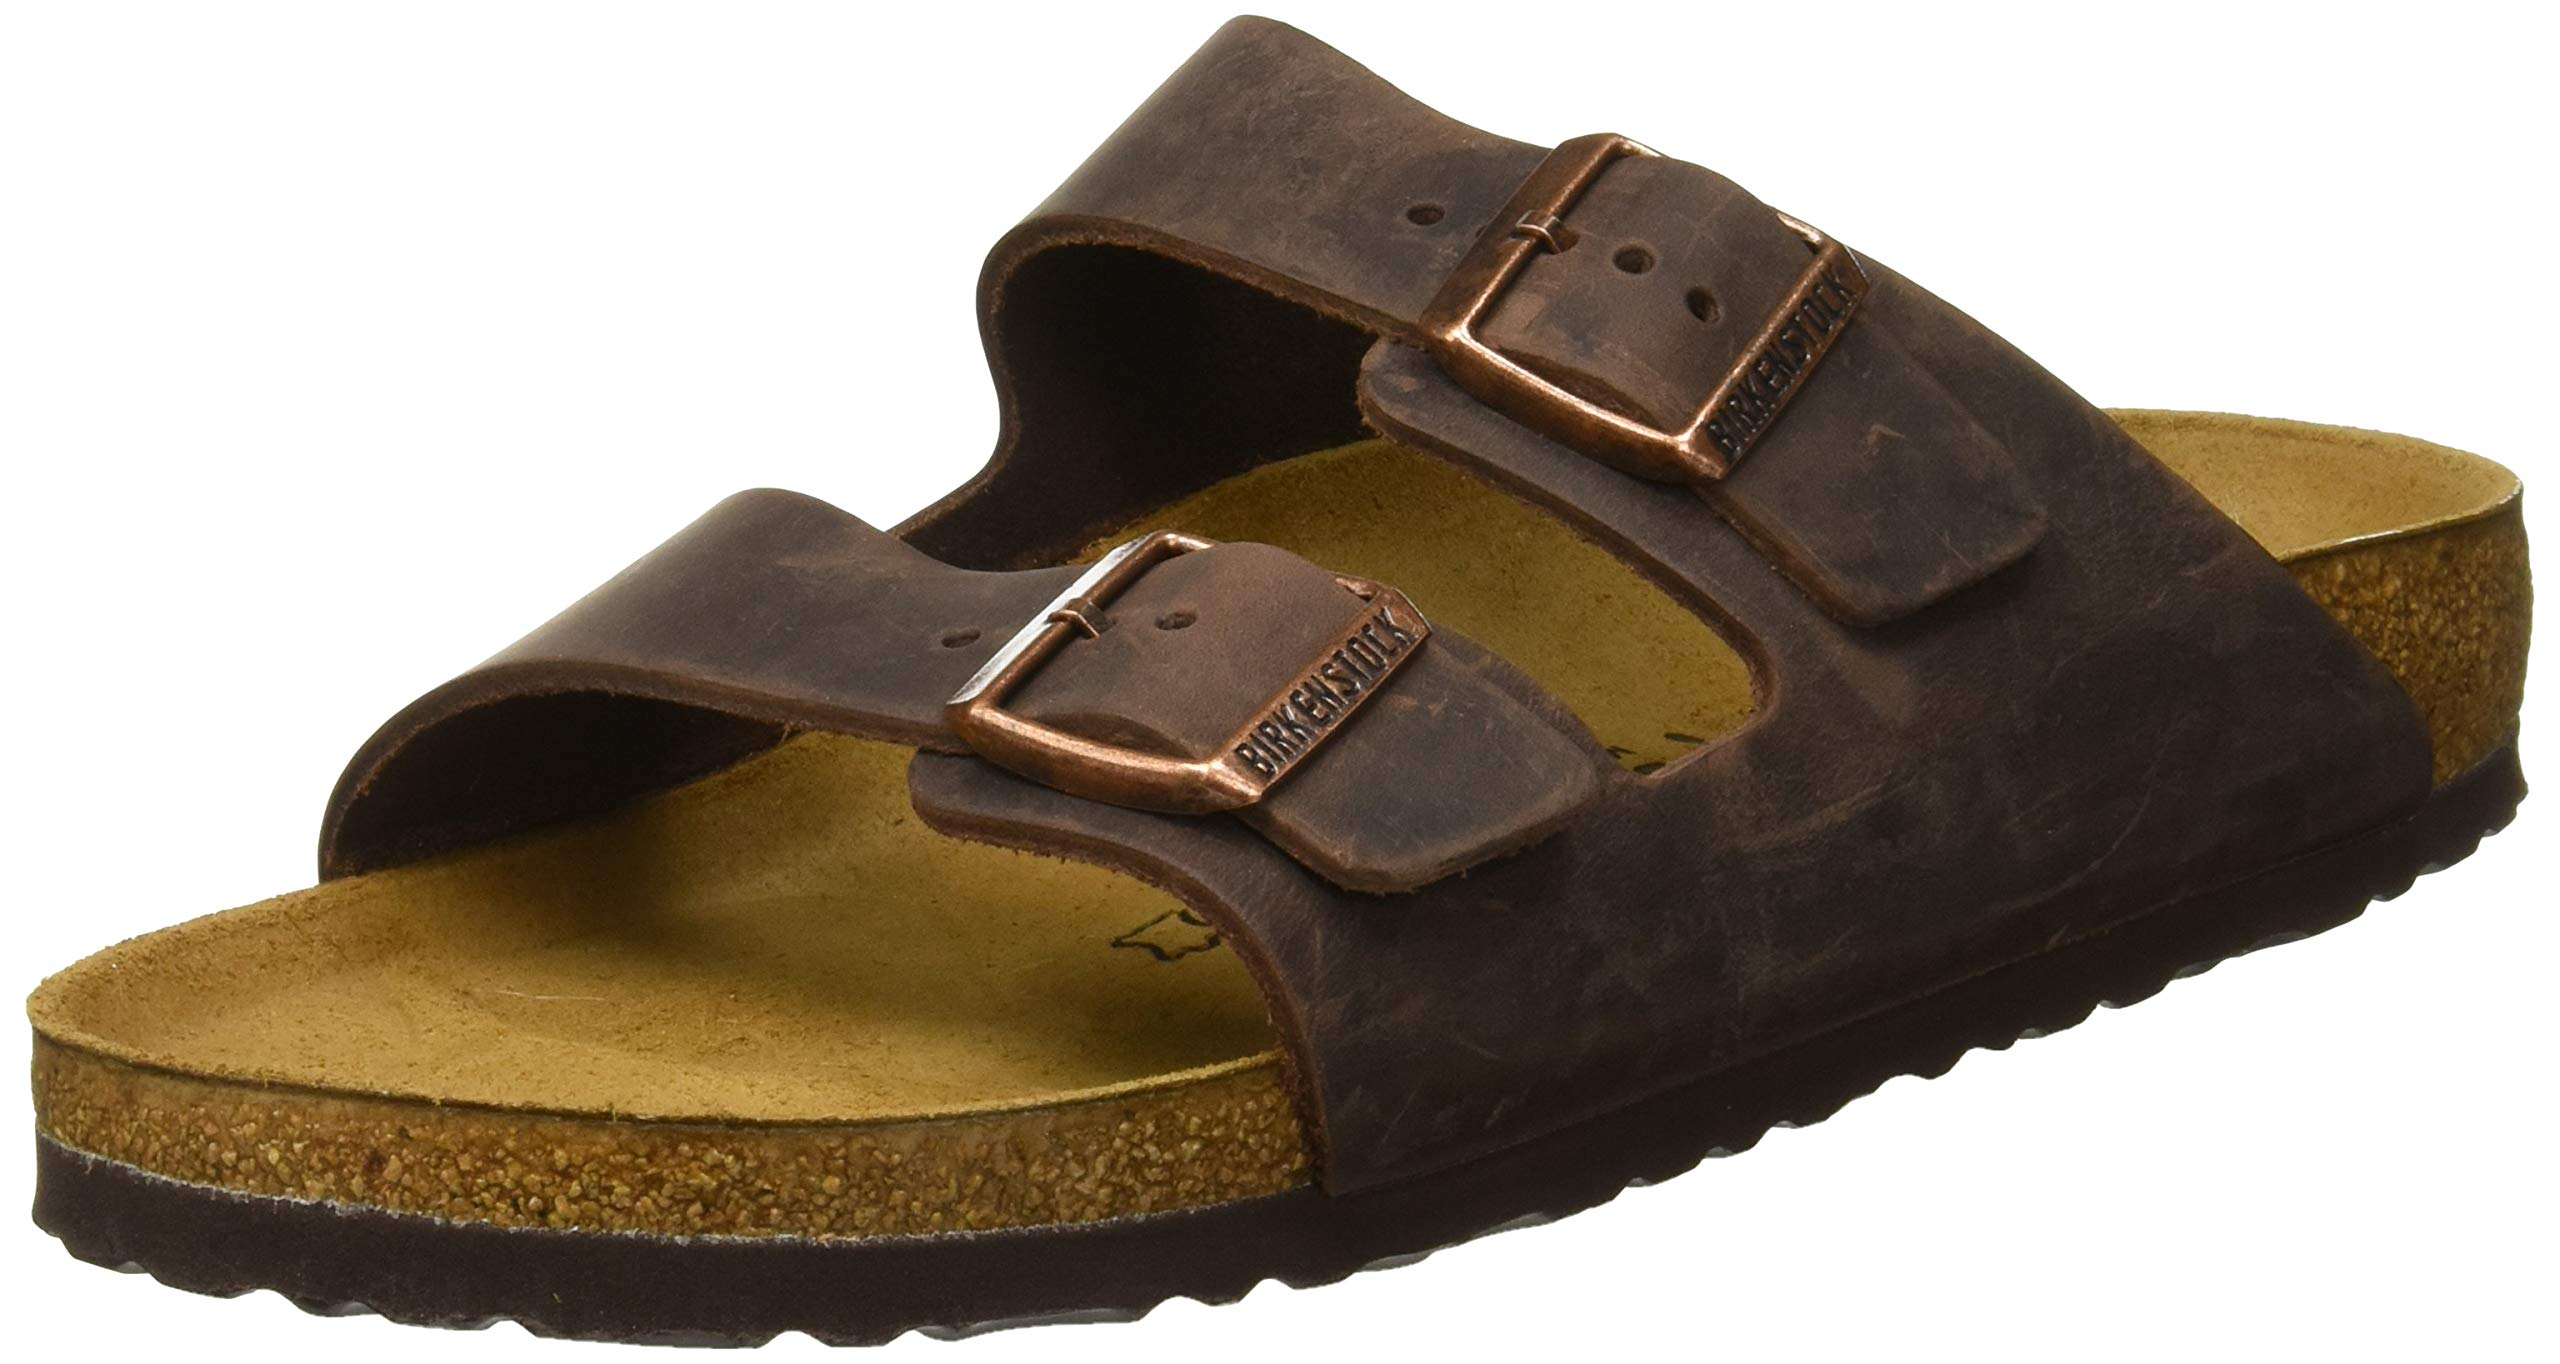 Birkenstock Arizona Unisex Leather Sandal, Habana Oiled Leather, 41 M EU